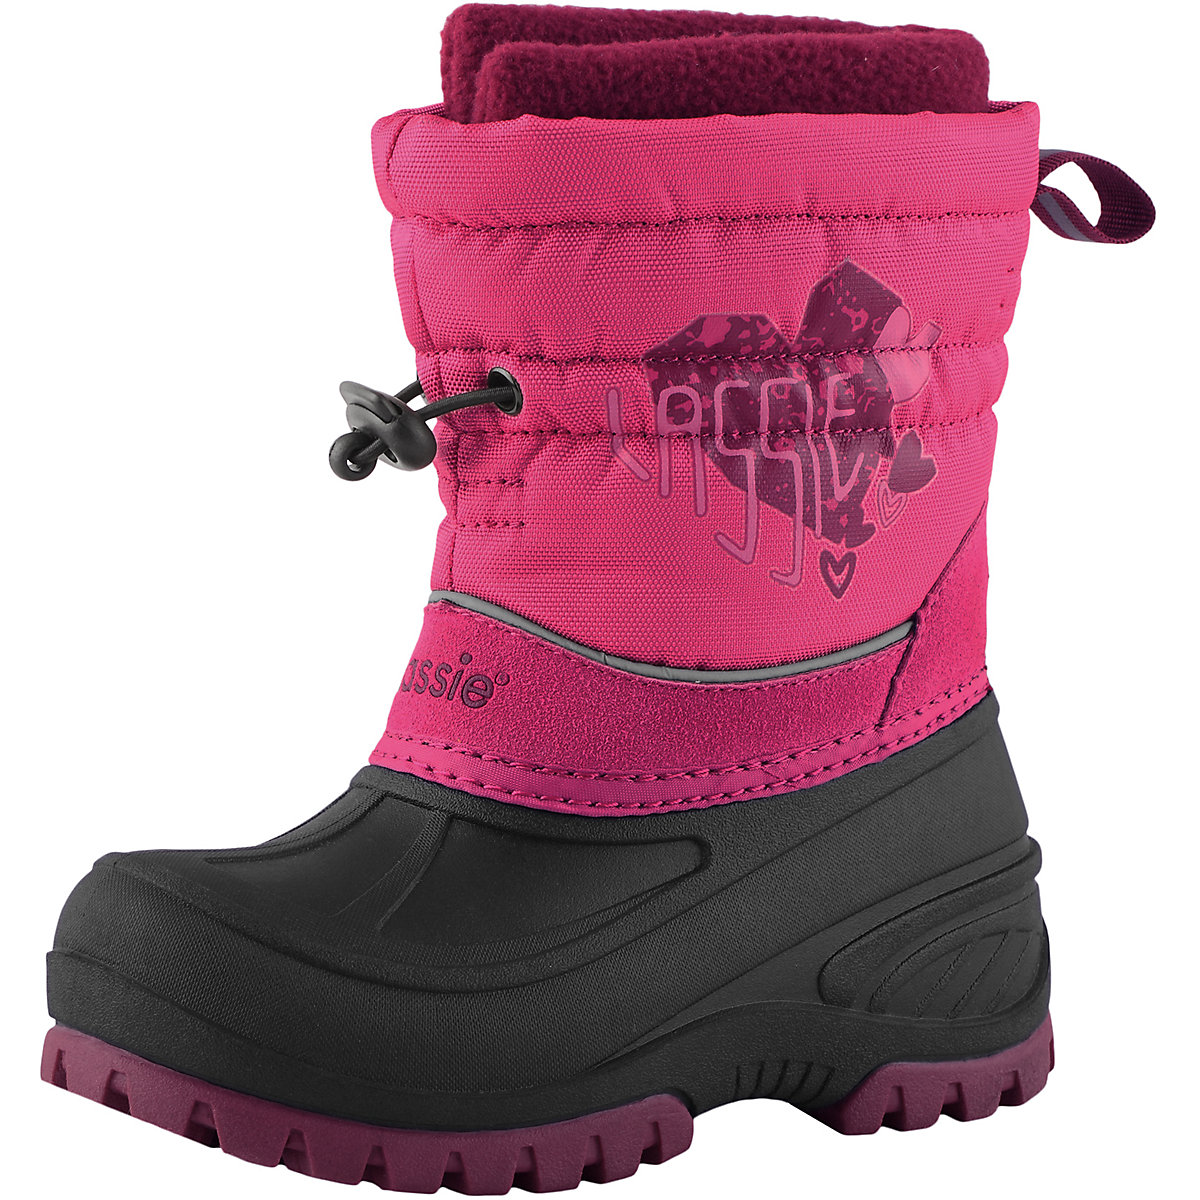 Boots LASSIE for girls 8622467 Valenki Uggi Winter shoes Children Kids